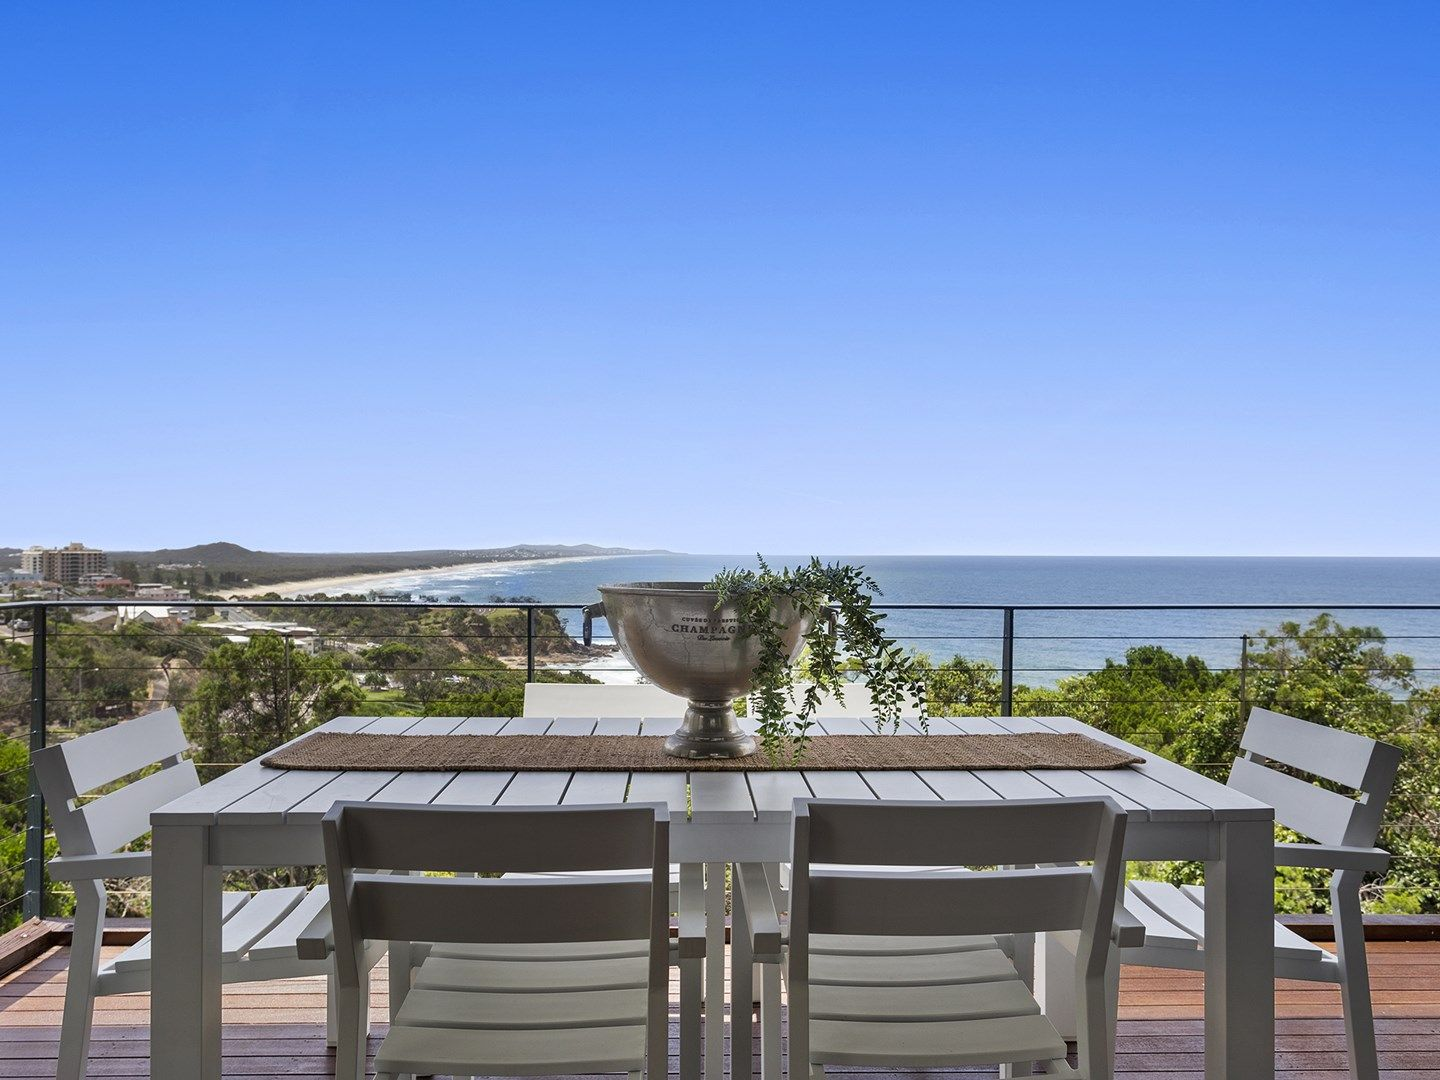 28 1 bay terrace coolum beach qld 4573 villa for sale for 111 coolum terrace coolum beach